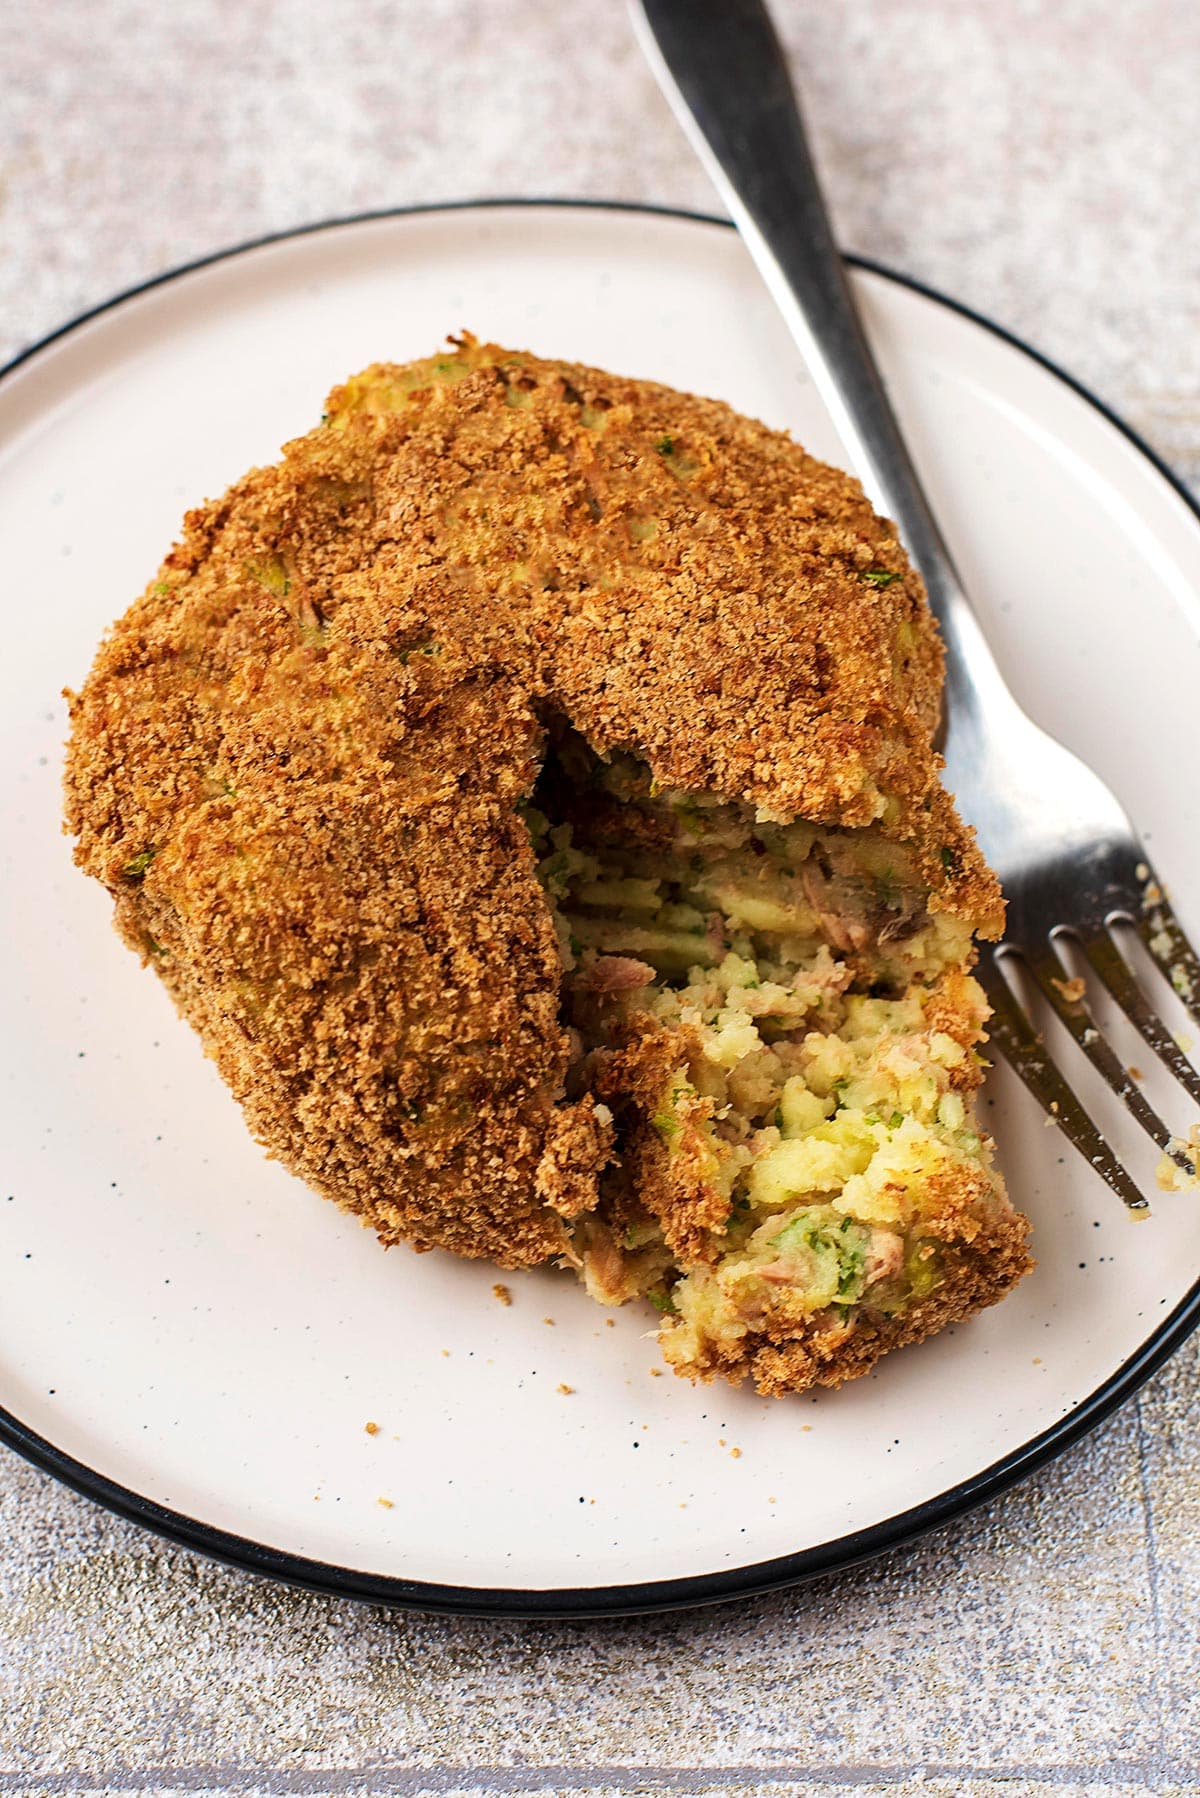 Tuna fish cake on a plate, cut open with a fork